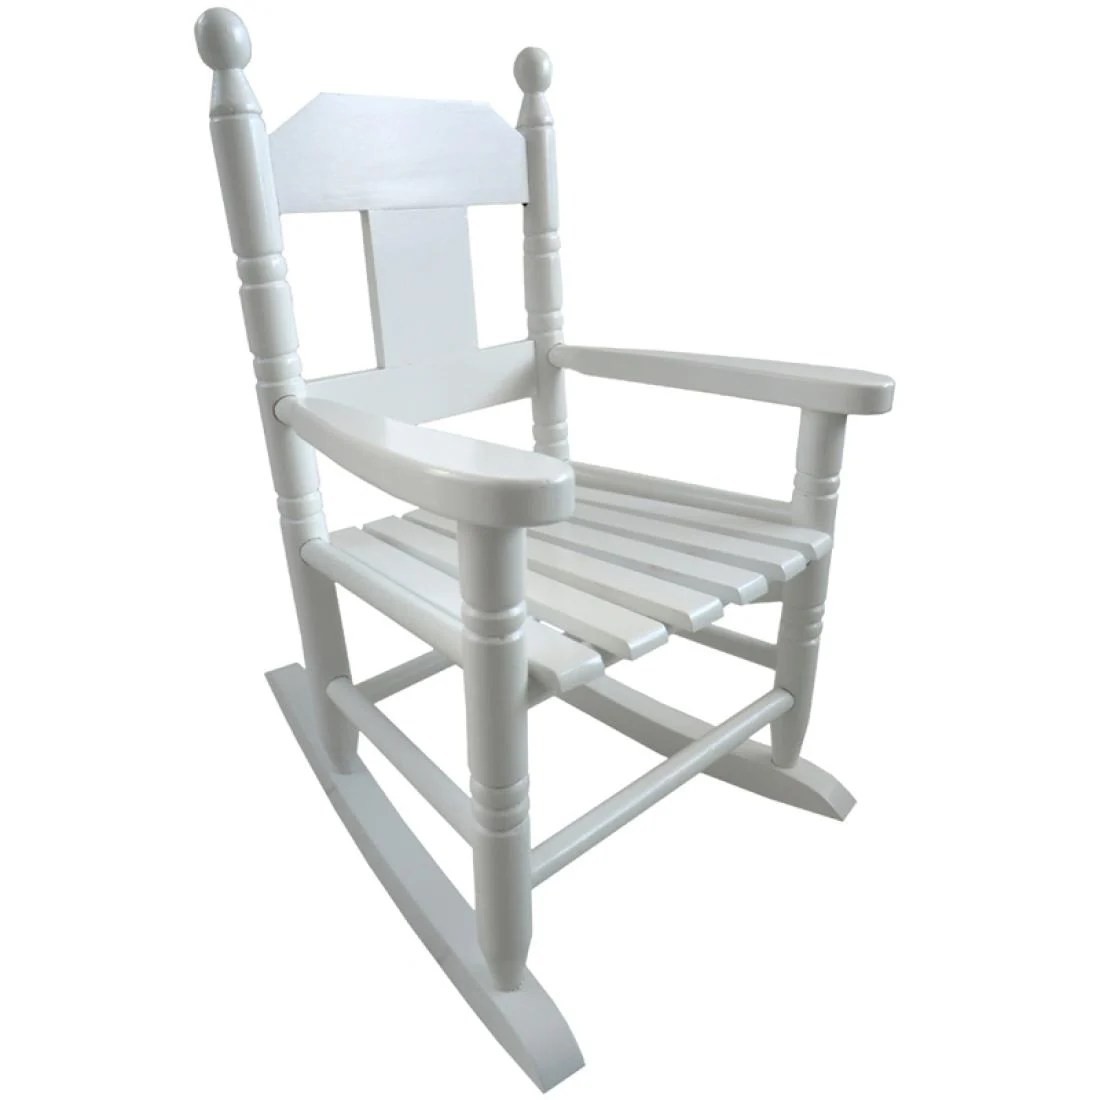 Child Wooden Rocking Chair White Childs Rocking Chair Childrens Rocking Chair Kids Chairs